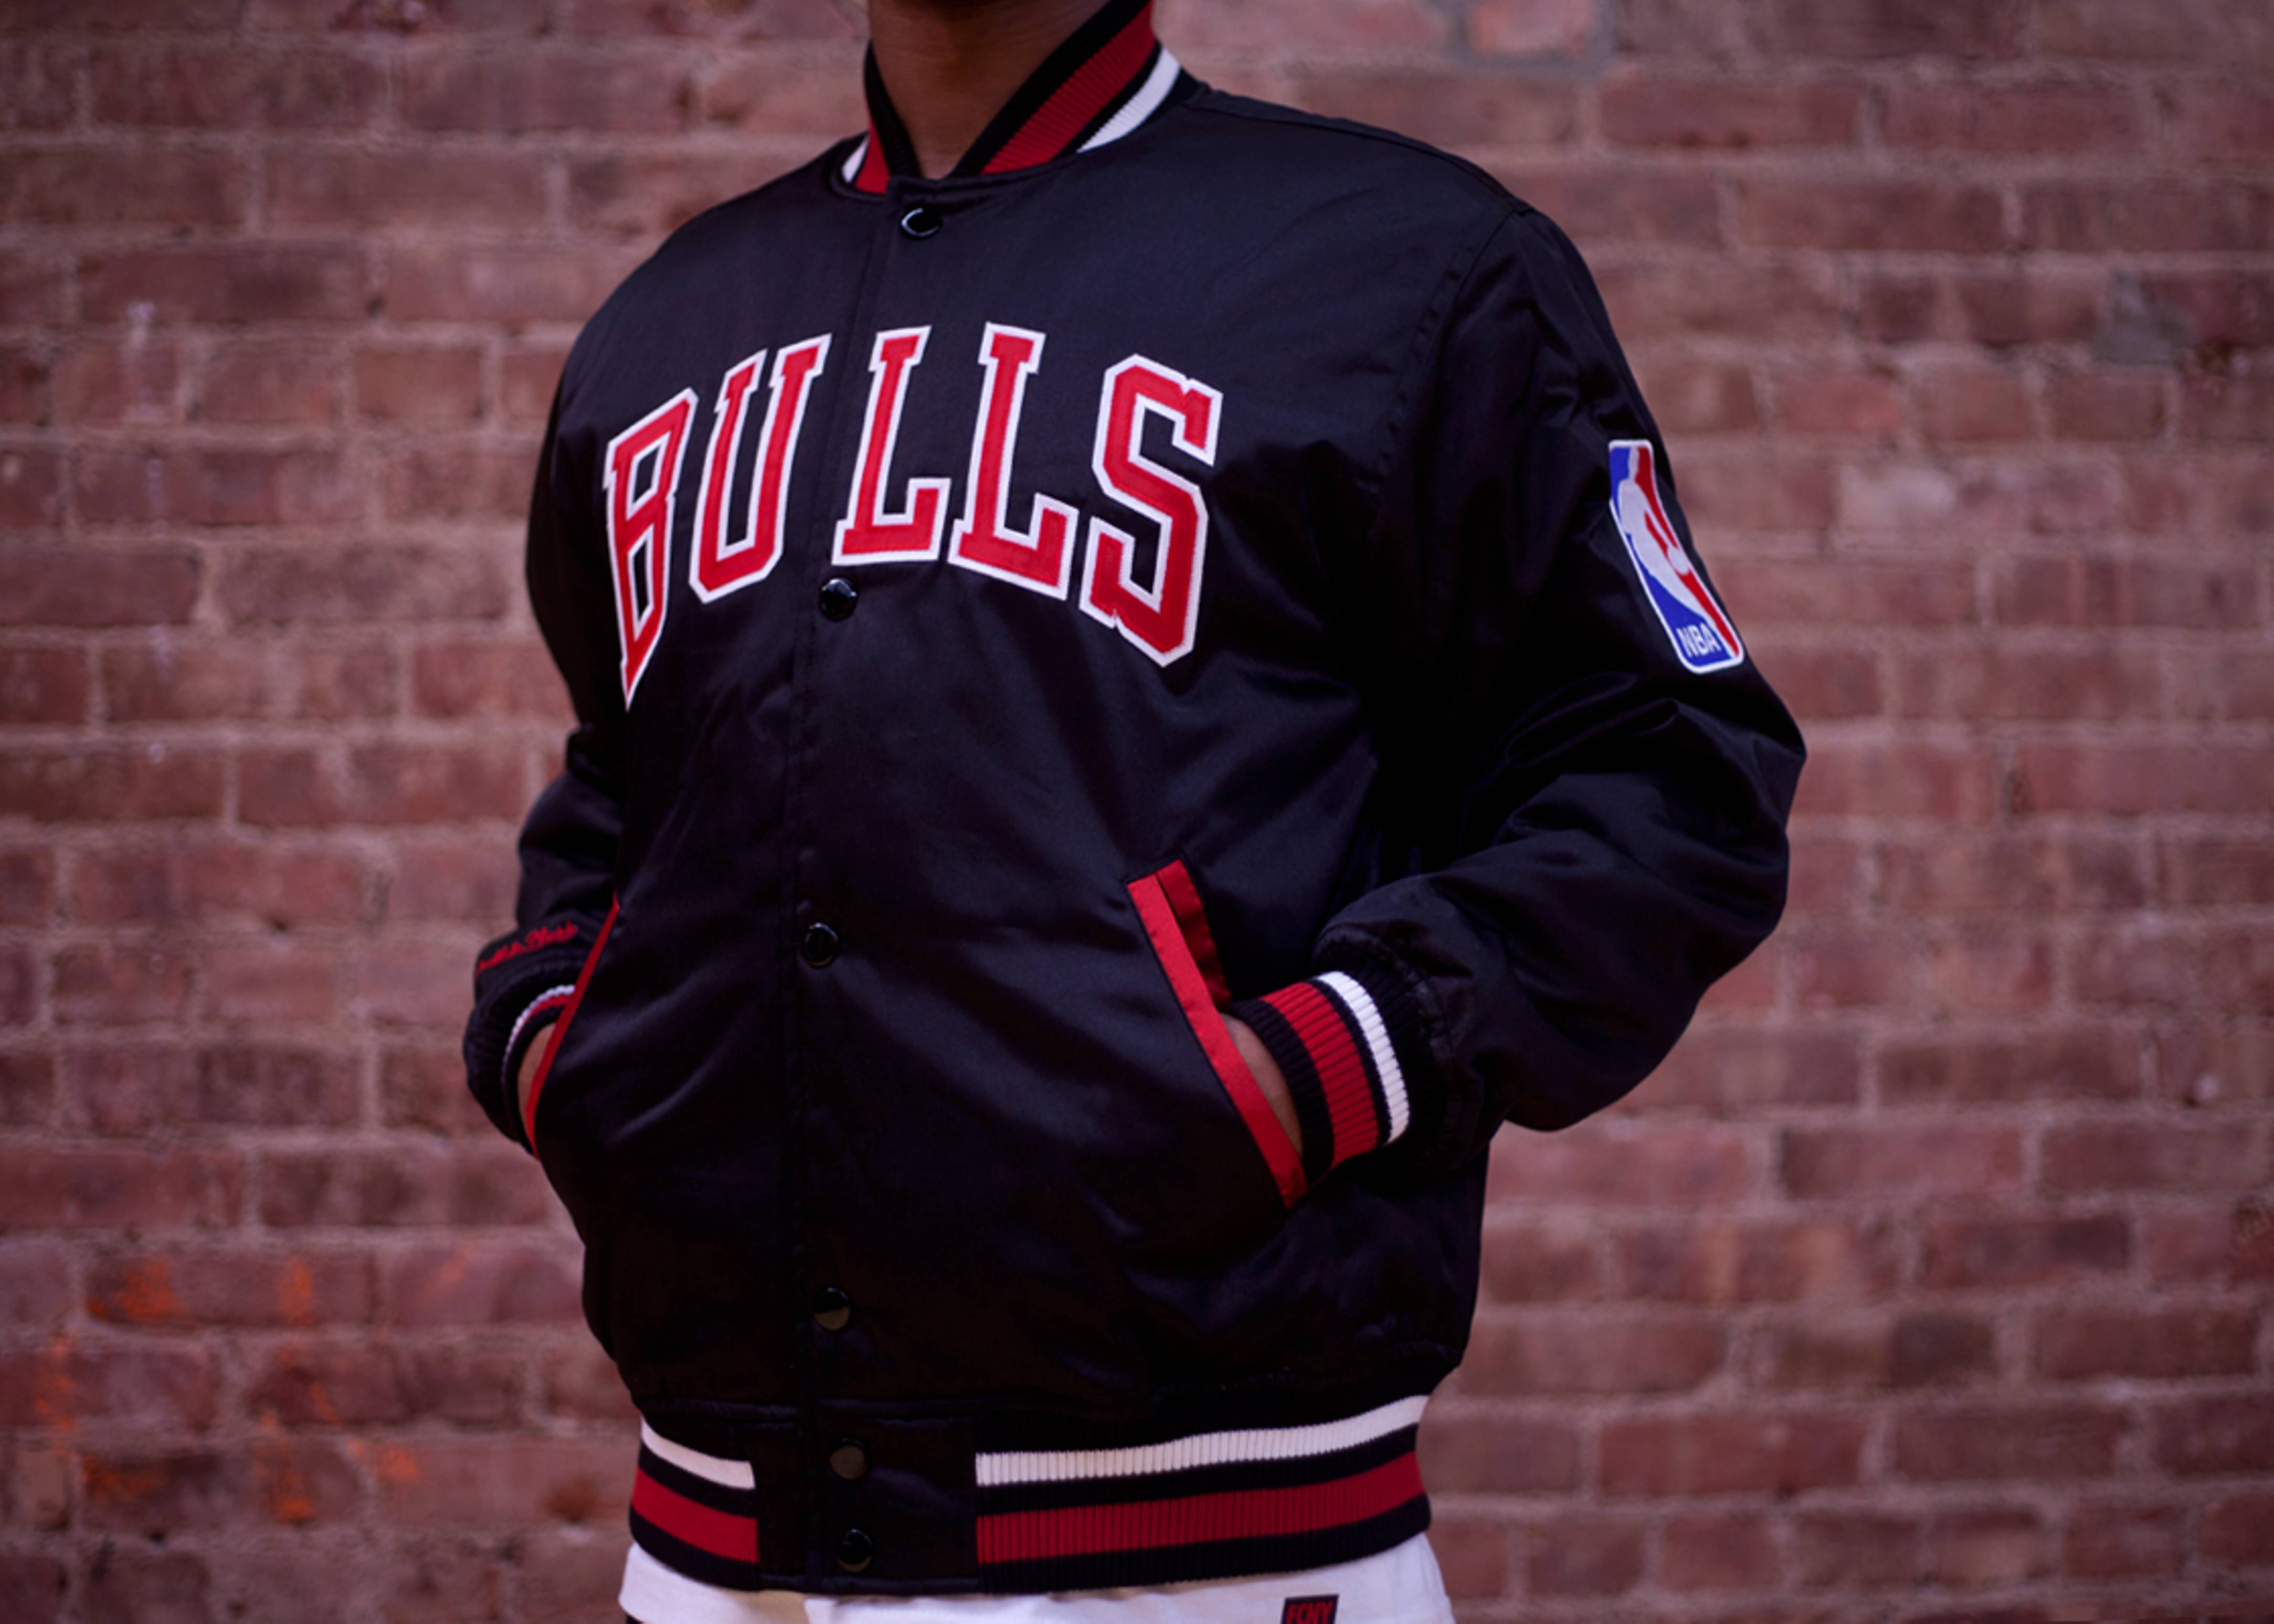 58eb194107d Chicago Bulls Nba Satin Jacket - Mitchell   Ness - 5 - black red ...